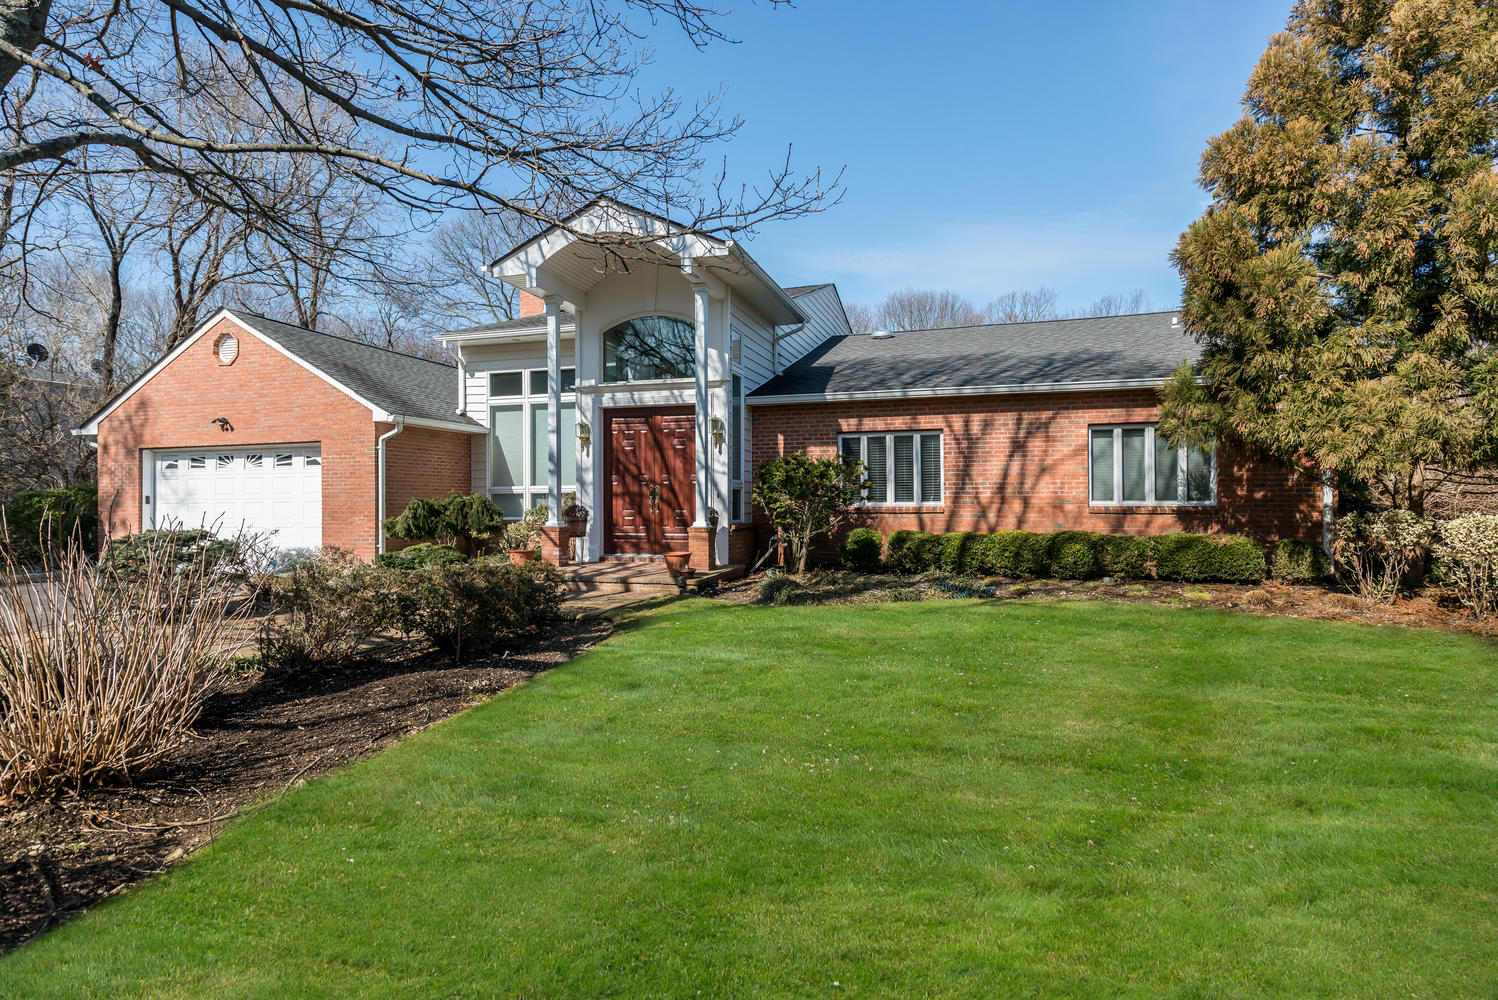 Single Family Home for Sale at Exp Ranch 359 Cold Spring Rd Syosset, New York, 11791 United States